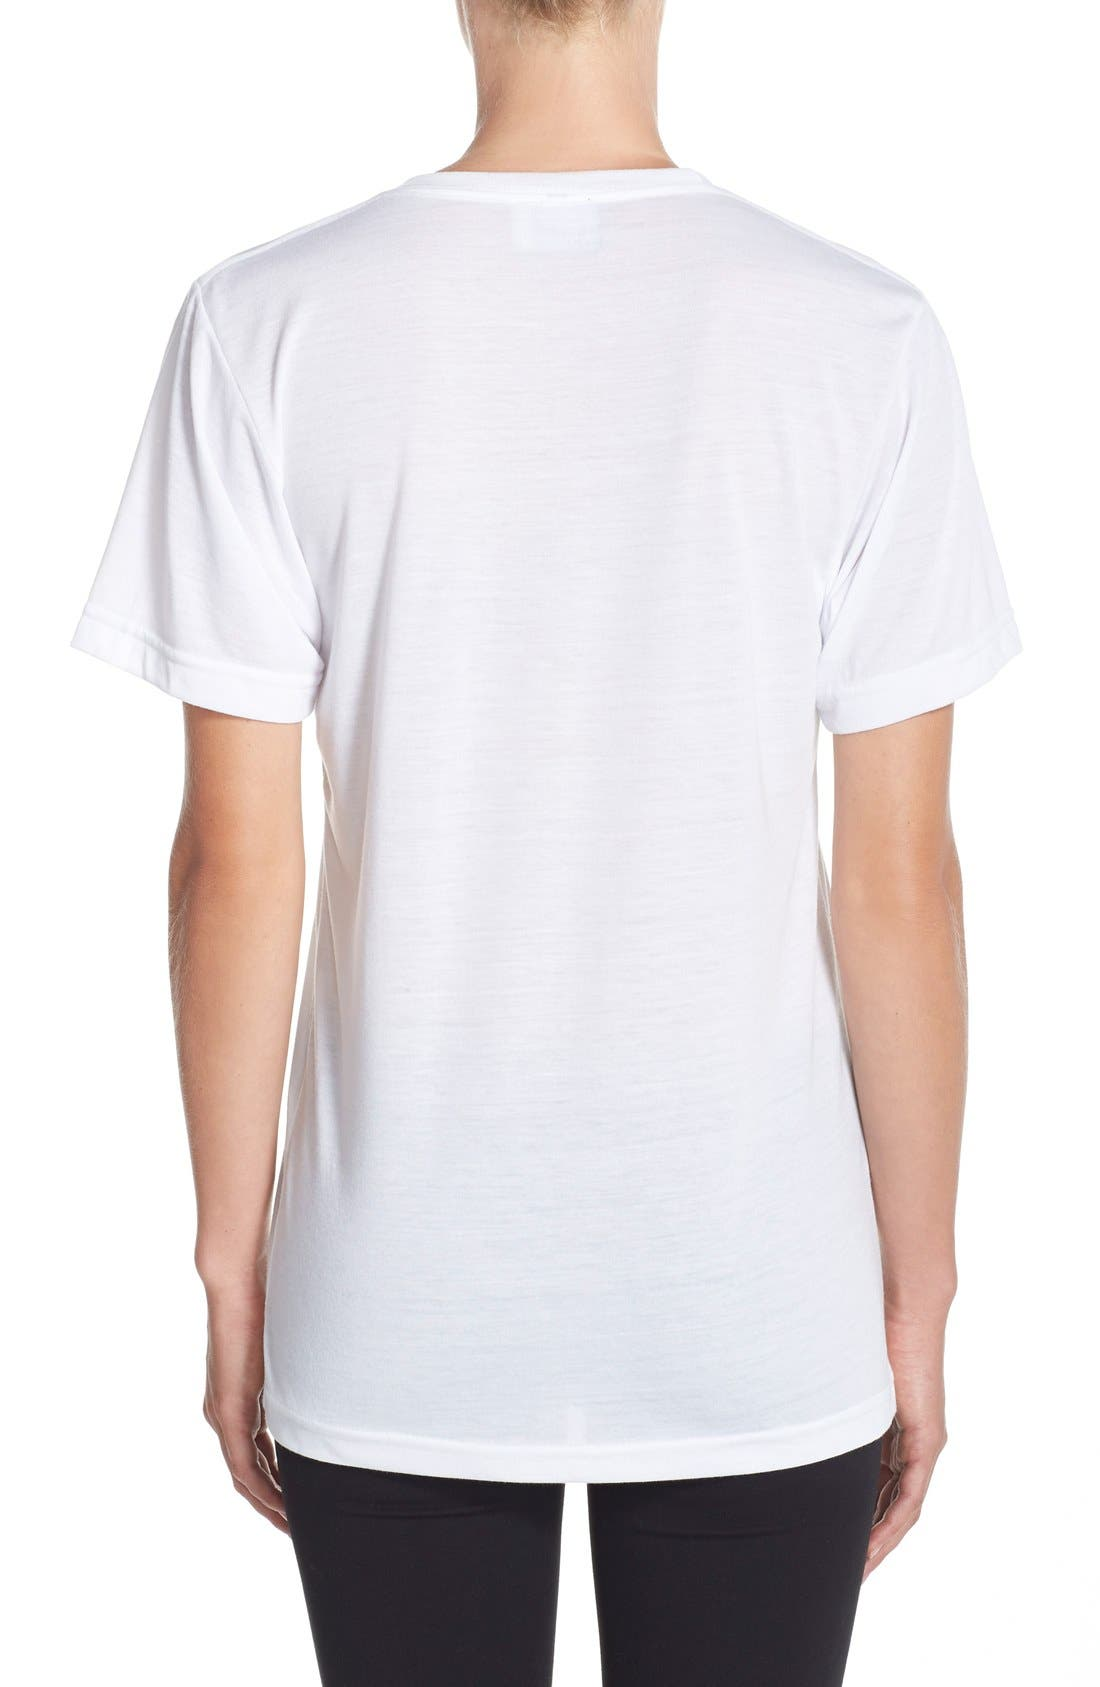 Alternate Image 2  - Private Party 'On Fleek' Graphic Tee